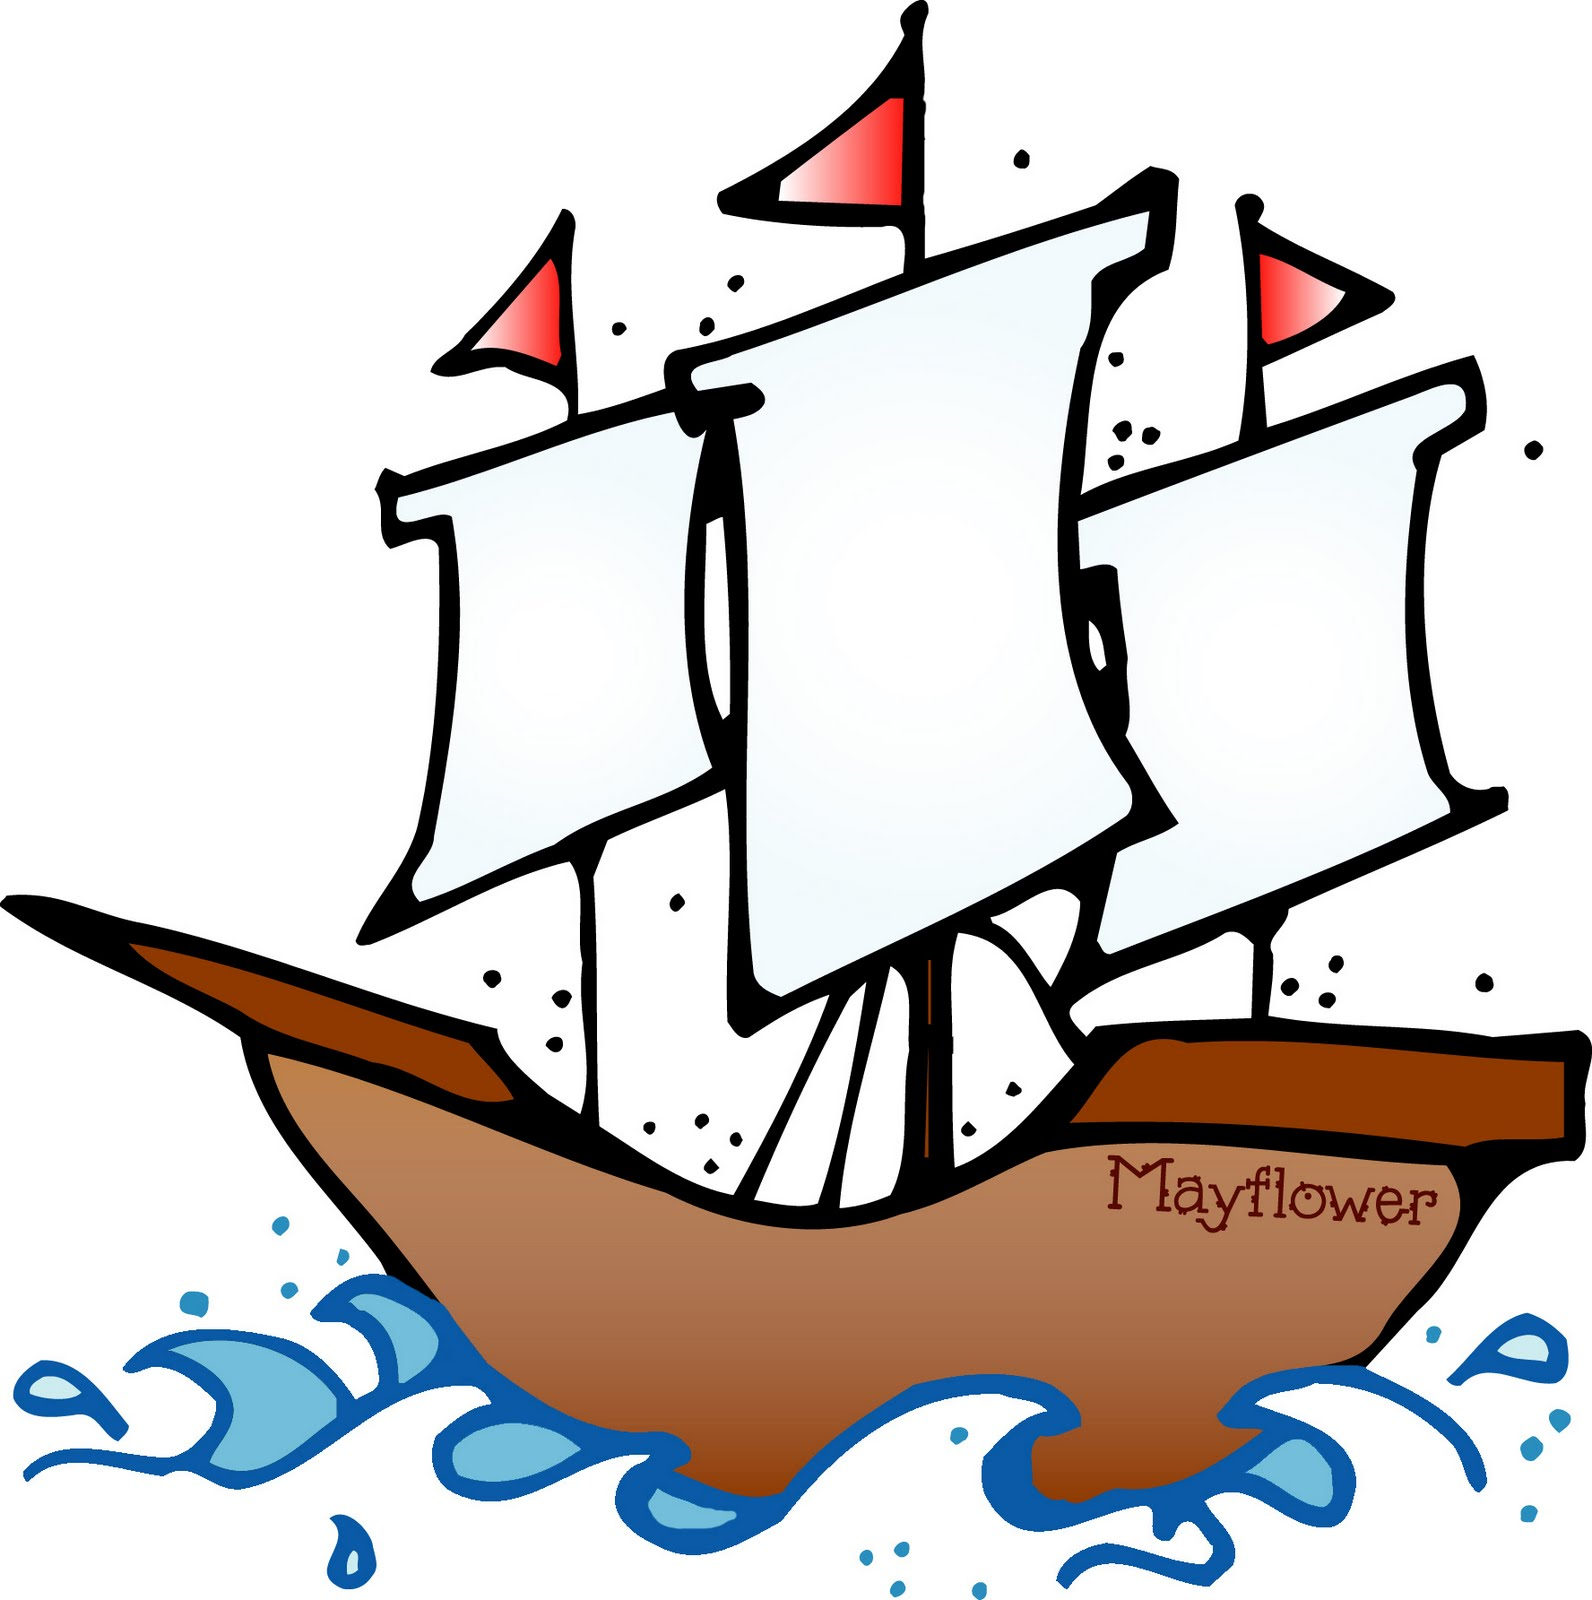 Pilgrim clipart mayflower Nyceducated Clip Keywords Clipart Tags